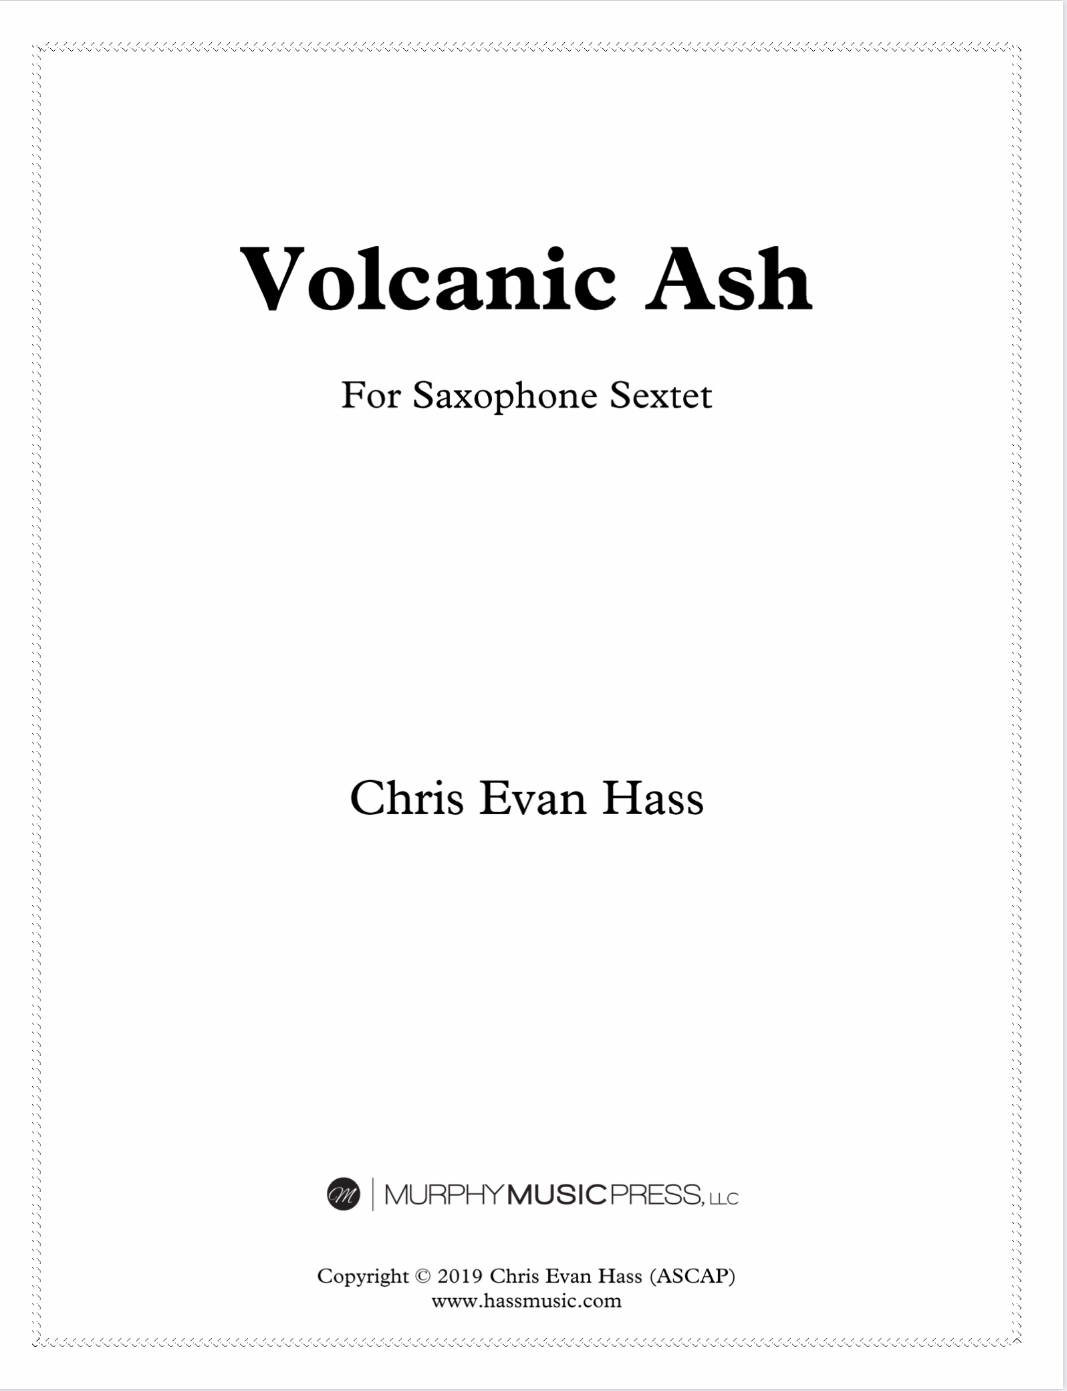 Volcanic Ash (Saxophone Ensemble Version) by Chris Evan Hass